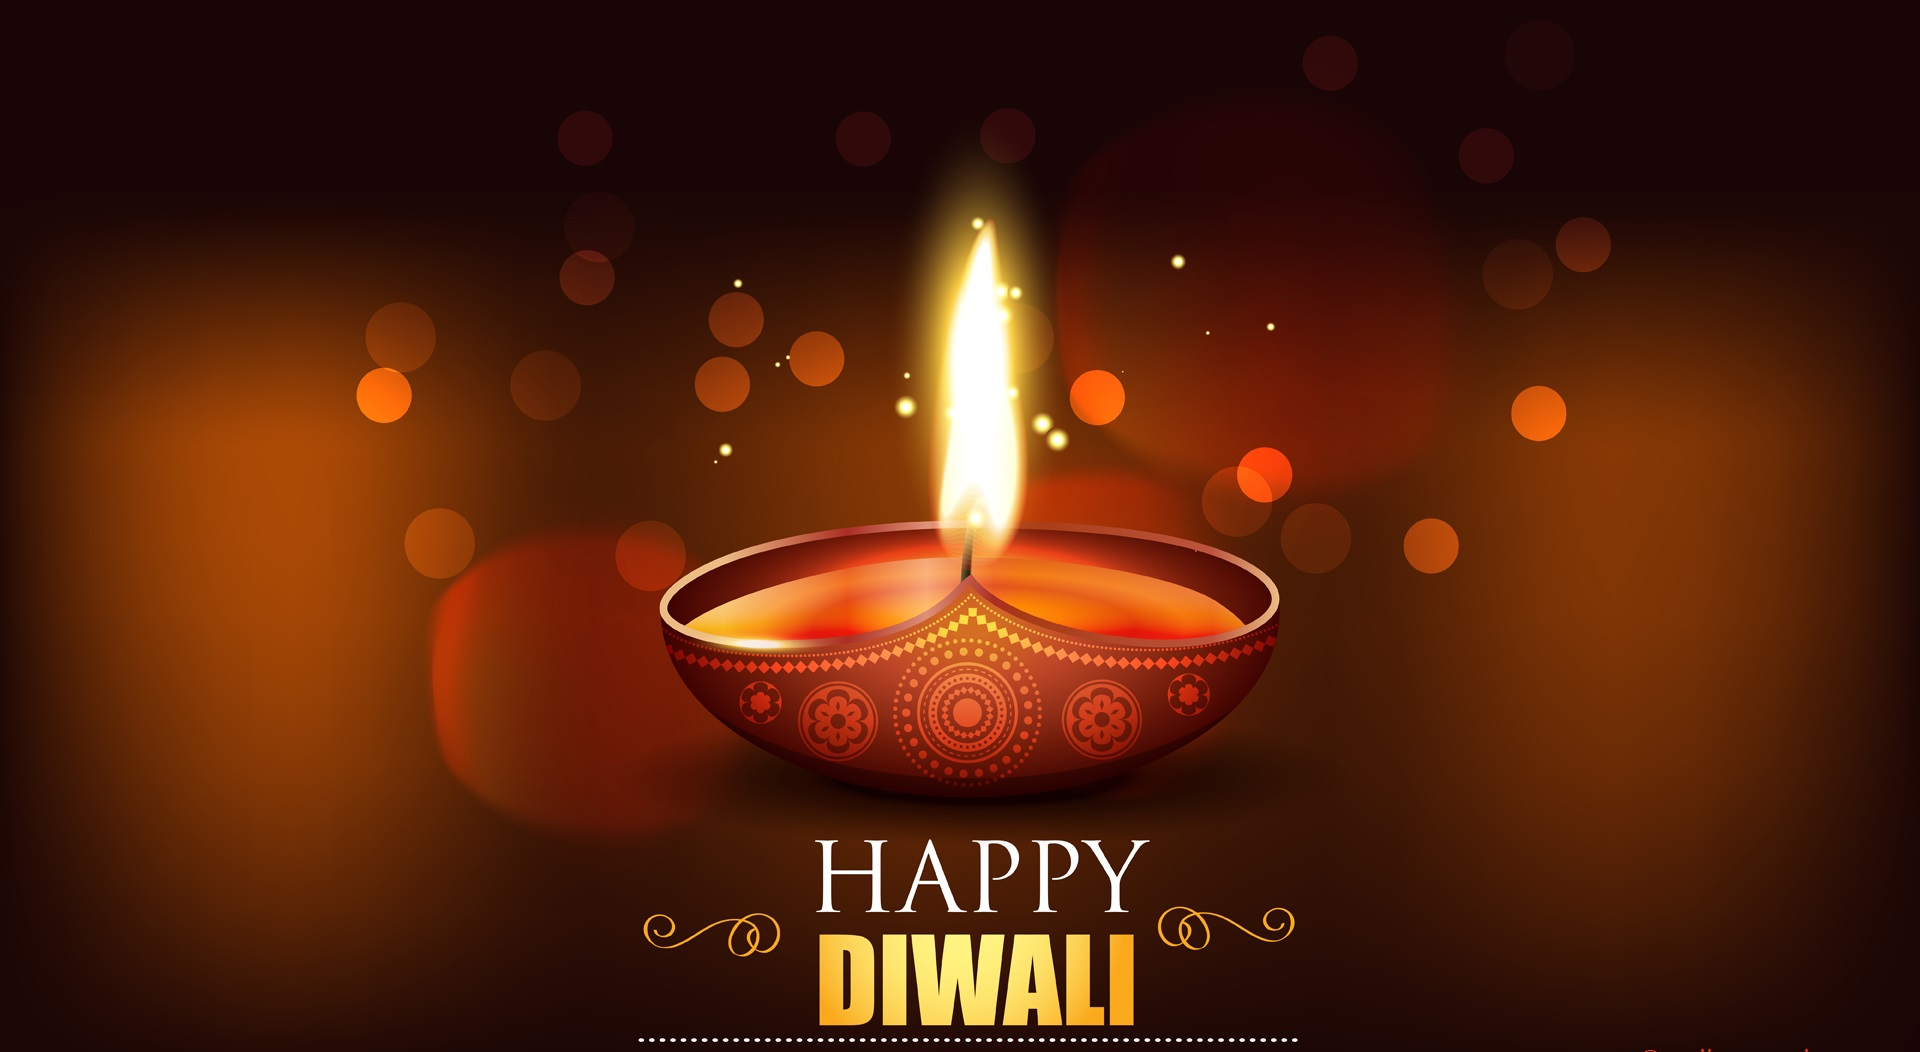 Download Diwali Hd Wallpapers 2016: {Best}* Happy Deepavali / Diwali Whatsapp DP, Facebook